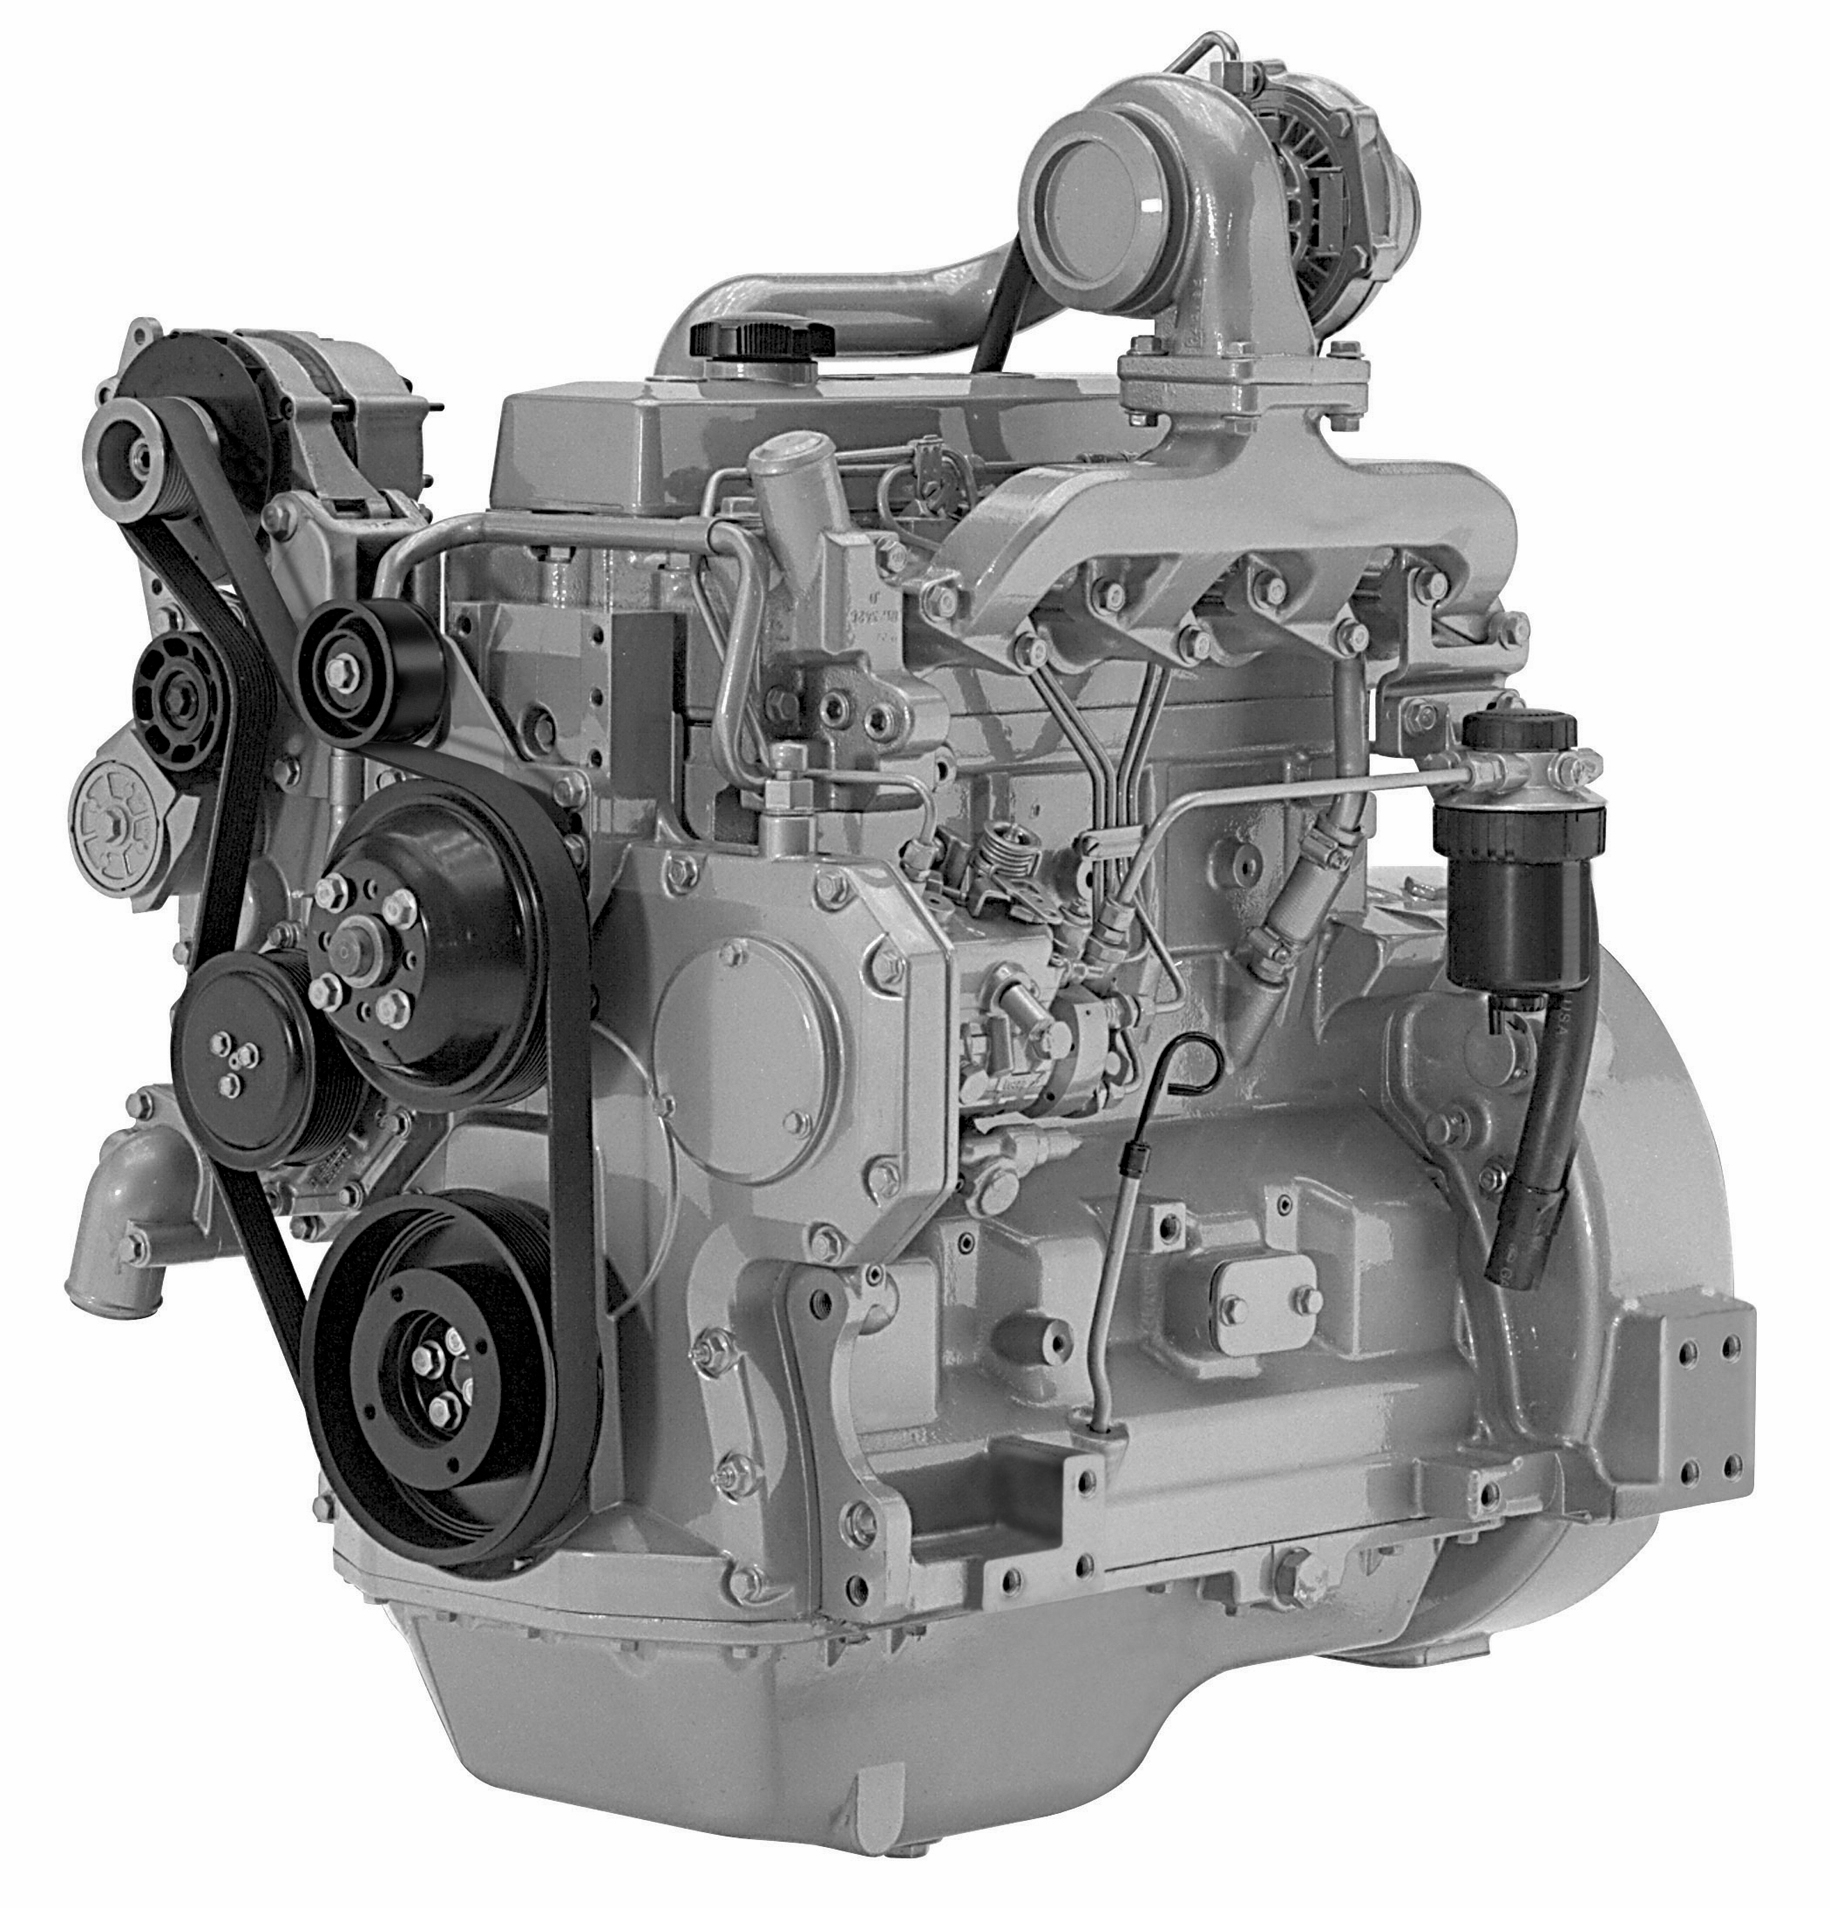 kubota diesel engine parts diagram remanufactured john deere 4045tf amp 4045hf diesel engine no ecu #14